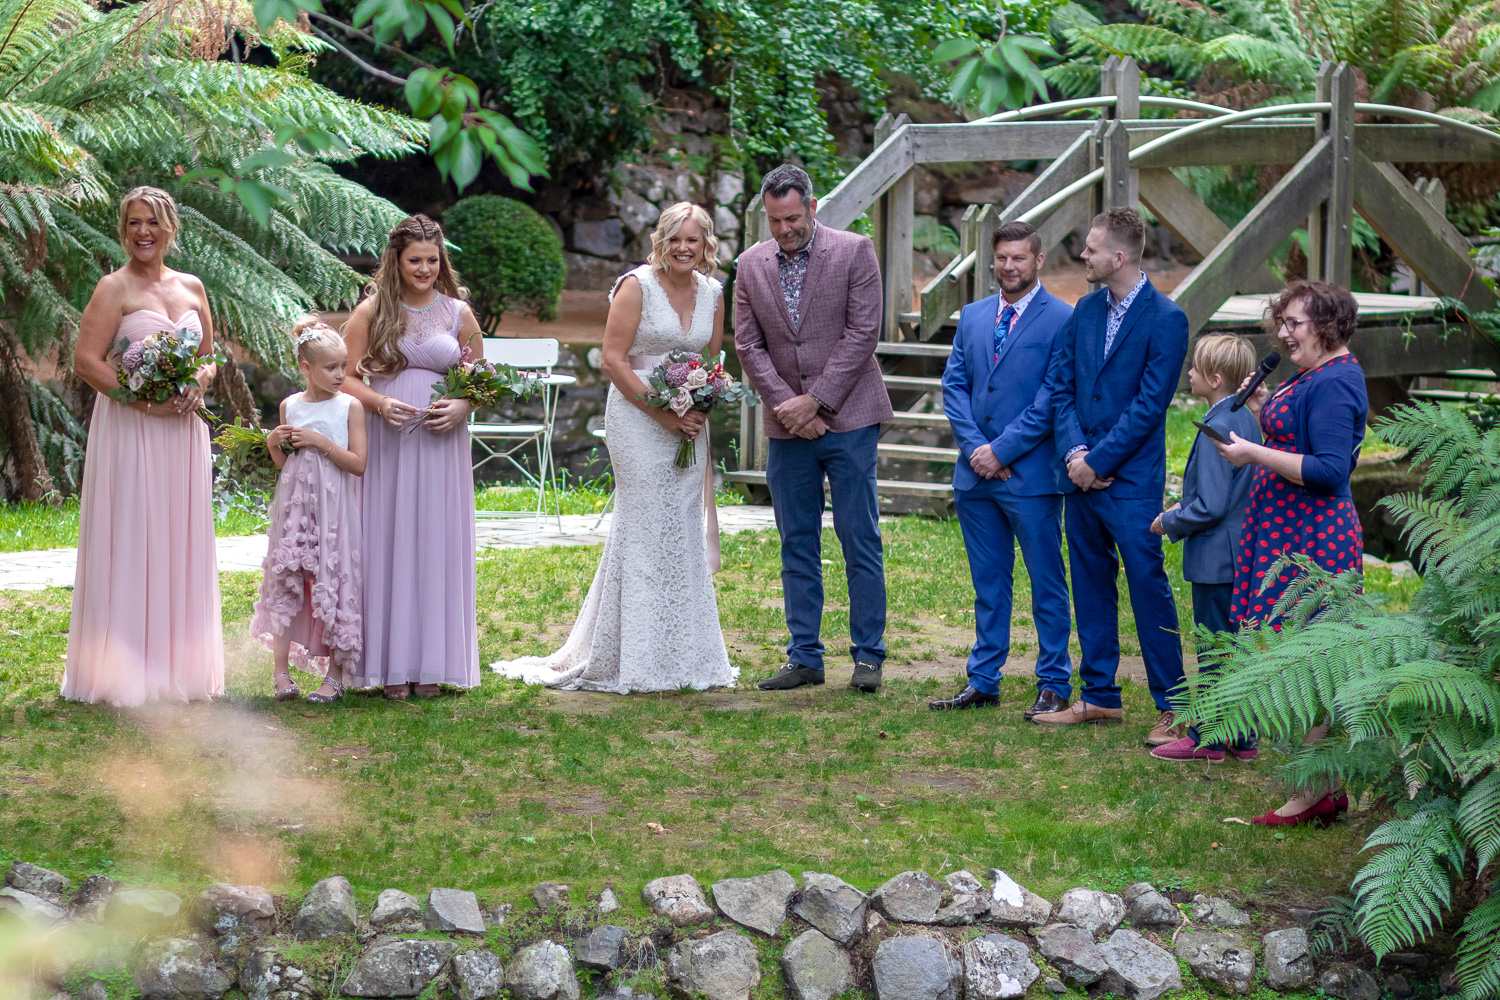 Relaxed-happy-wedding-Dandenong-Ranges-with-marriage-celebrant-virginia-lawrence.jpg